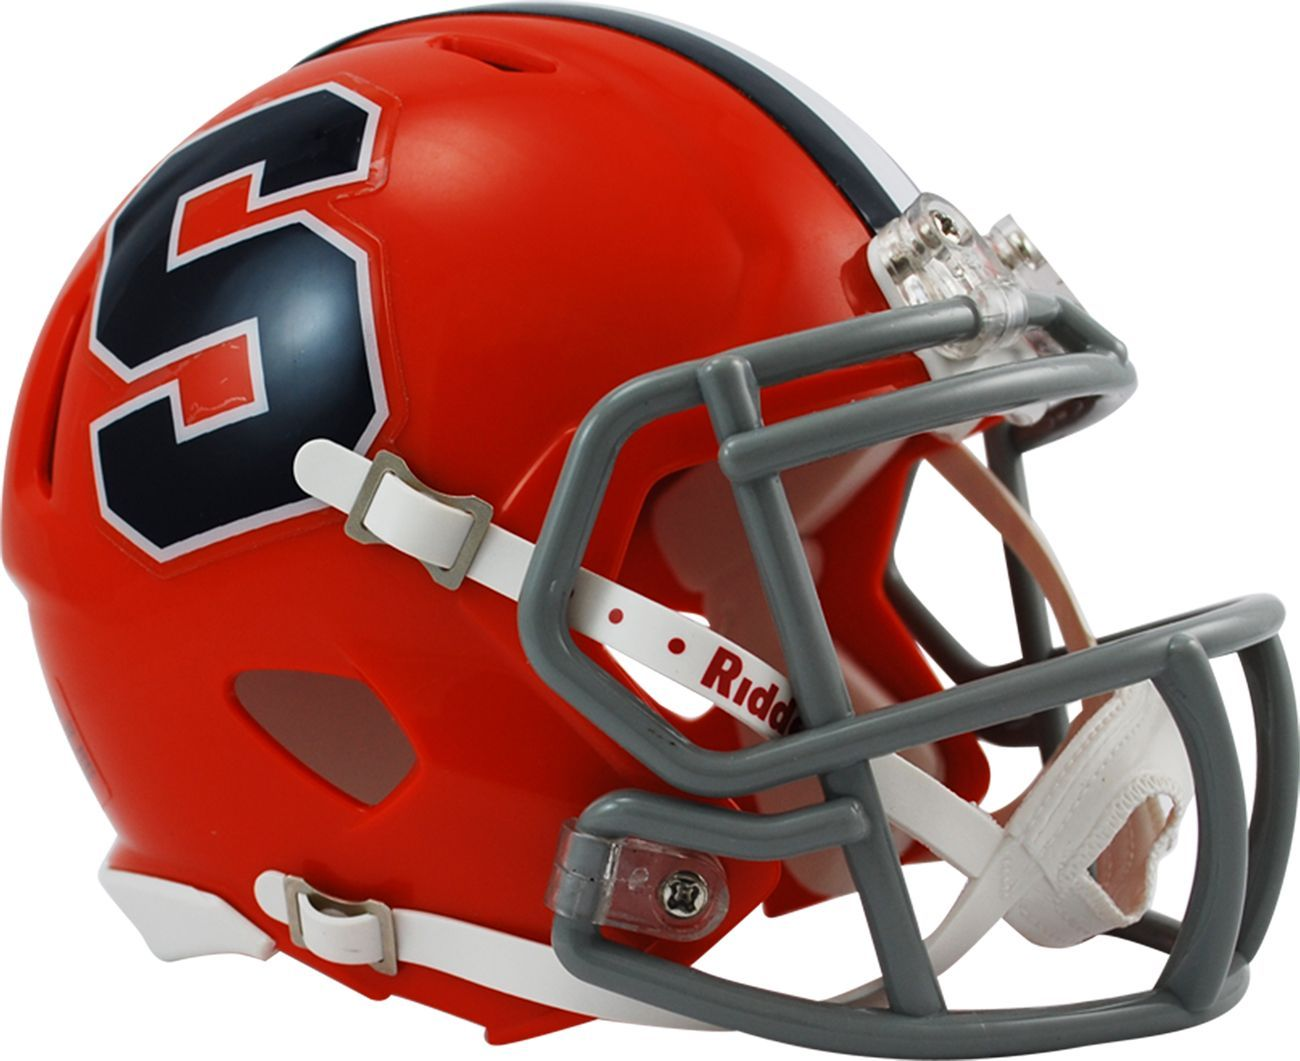 NCAA Syracuse Orangemen Speed College MINI CASCO Riddell AMERICAN FOOTBALL HELMET